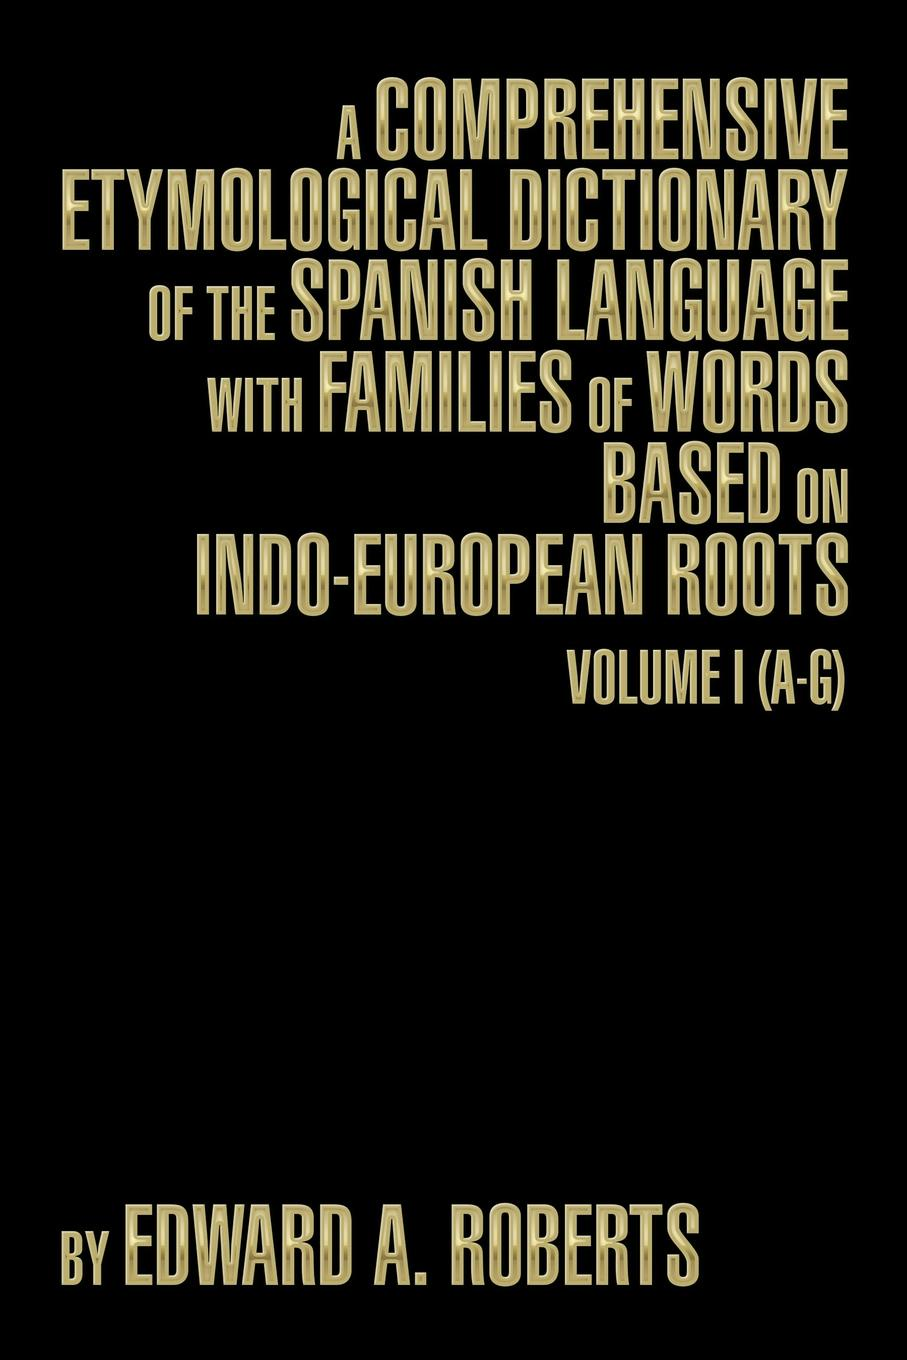 Edward a. Roberts A Comprehensive Etymological Dictionary of the Spanish Language with Families of Words Based on Indo-European Roots. Volume I (A-G) w chambers etymological dictionary of the english language